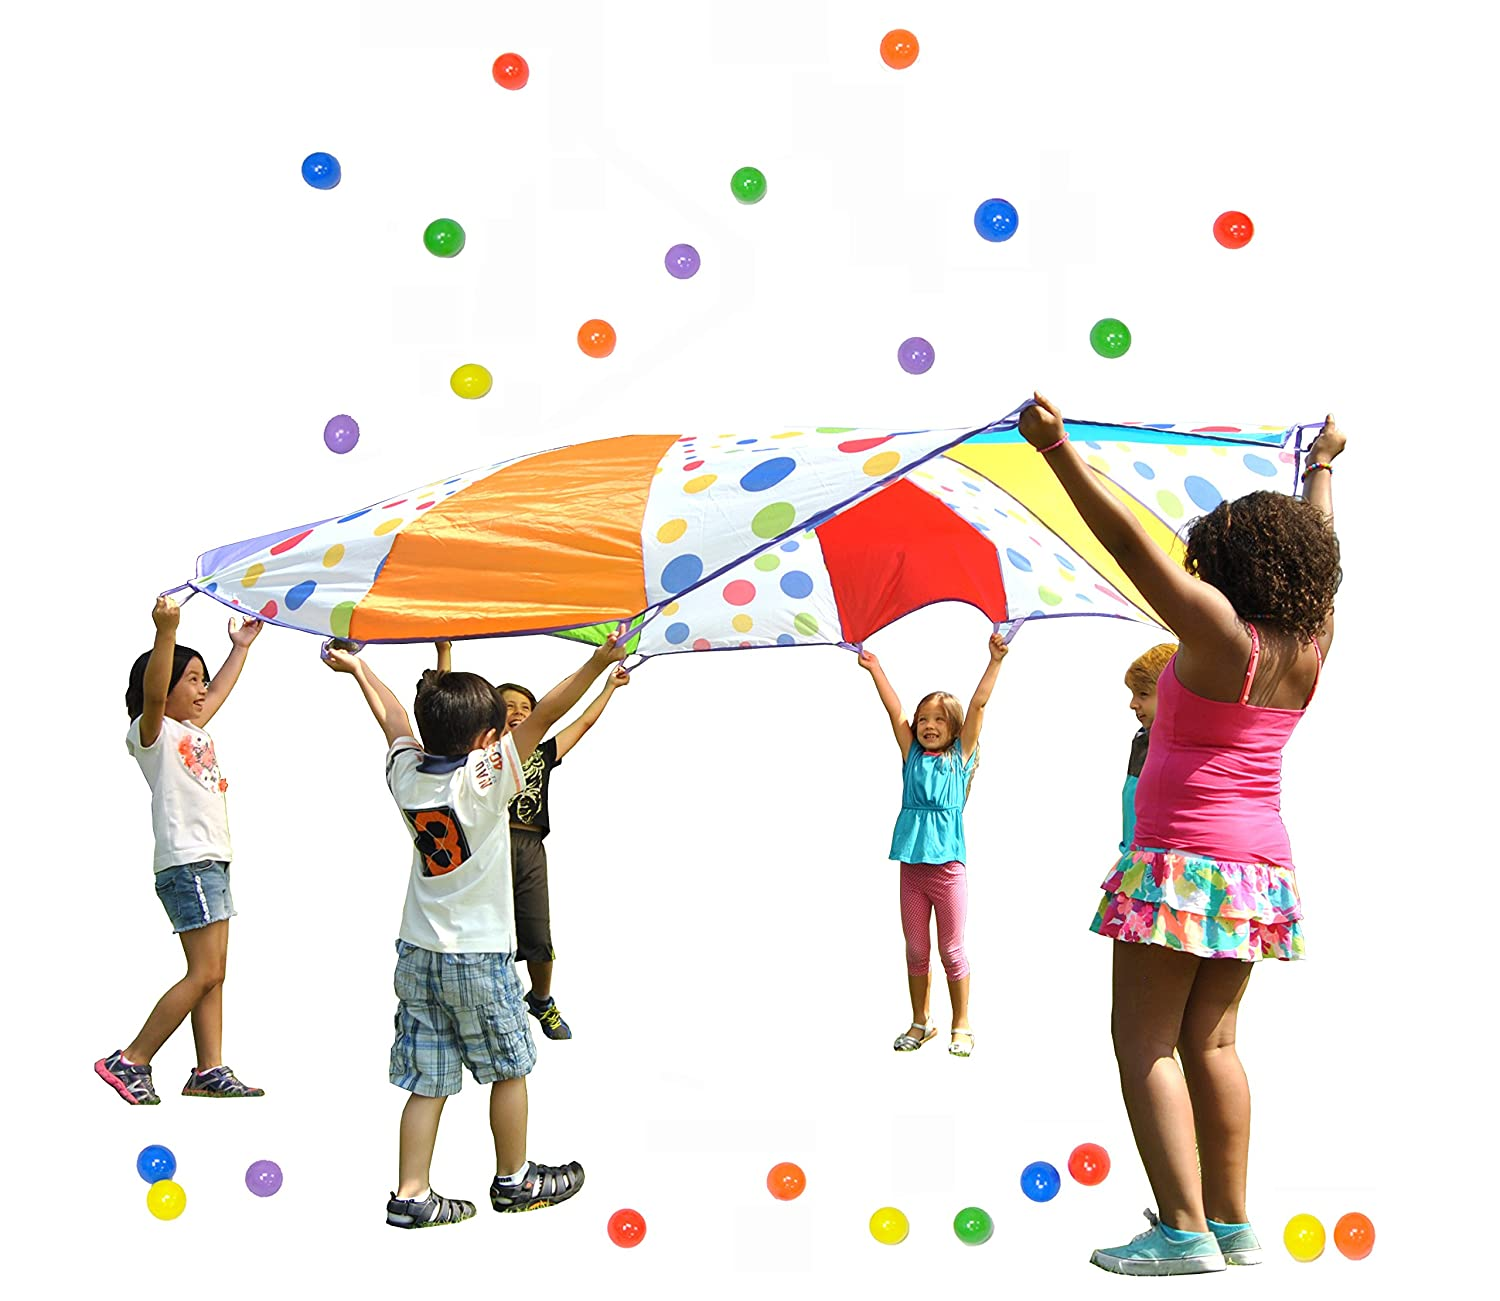 parachute cooperative learning team builder for kids